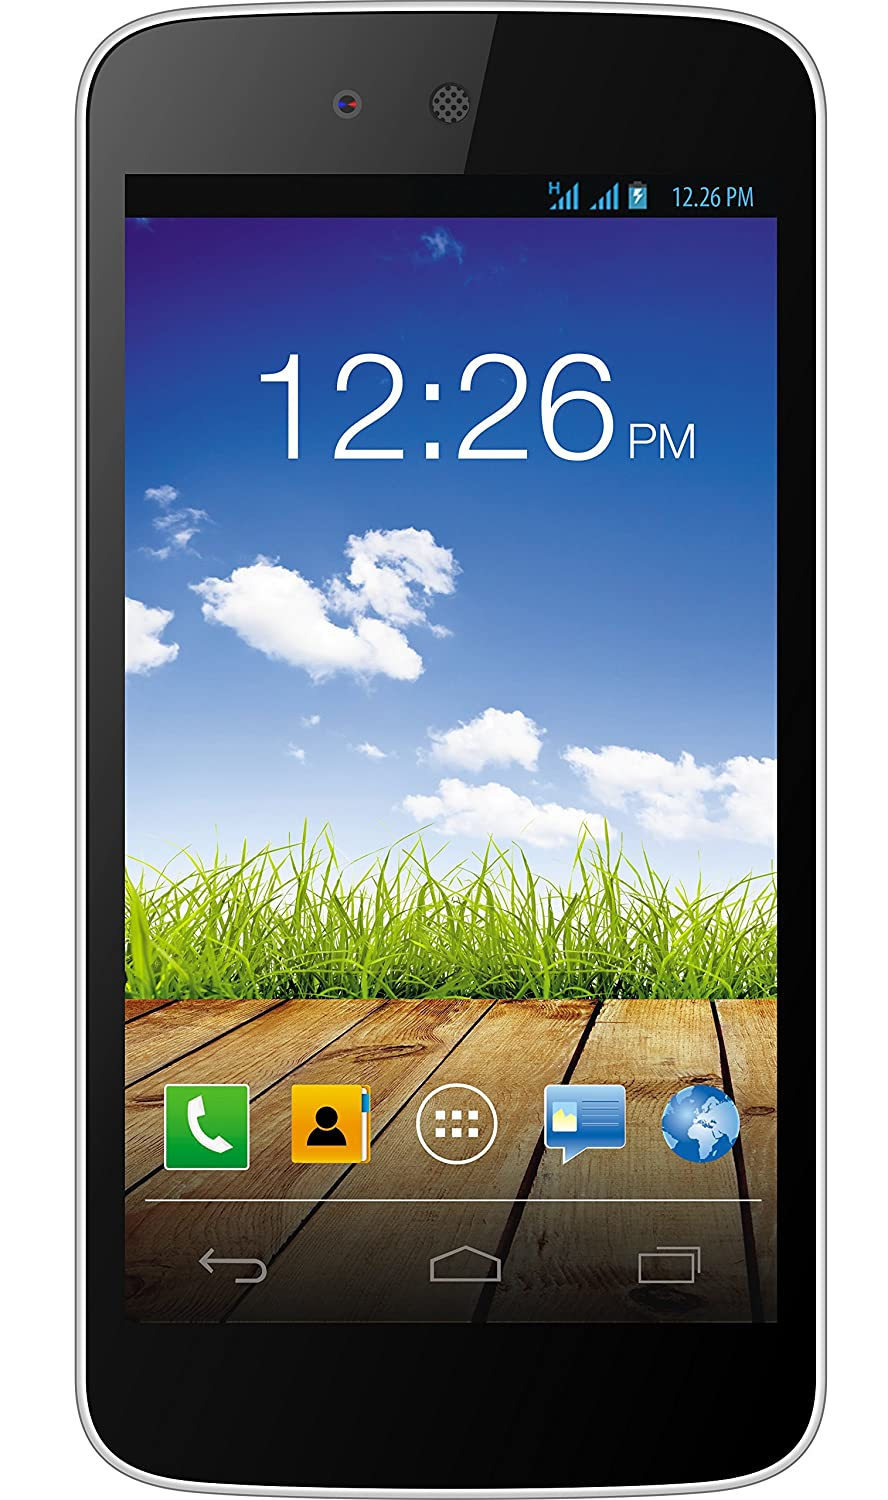 Micromax Canvas A1 with Android One (Serene White) Just Rs 4,949 Only Claim this Offer Now